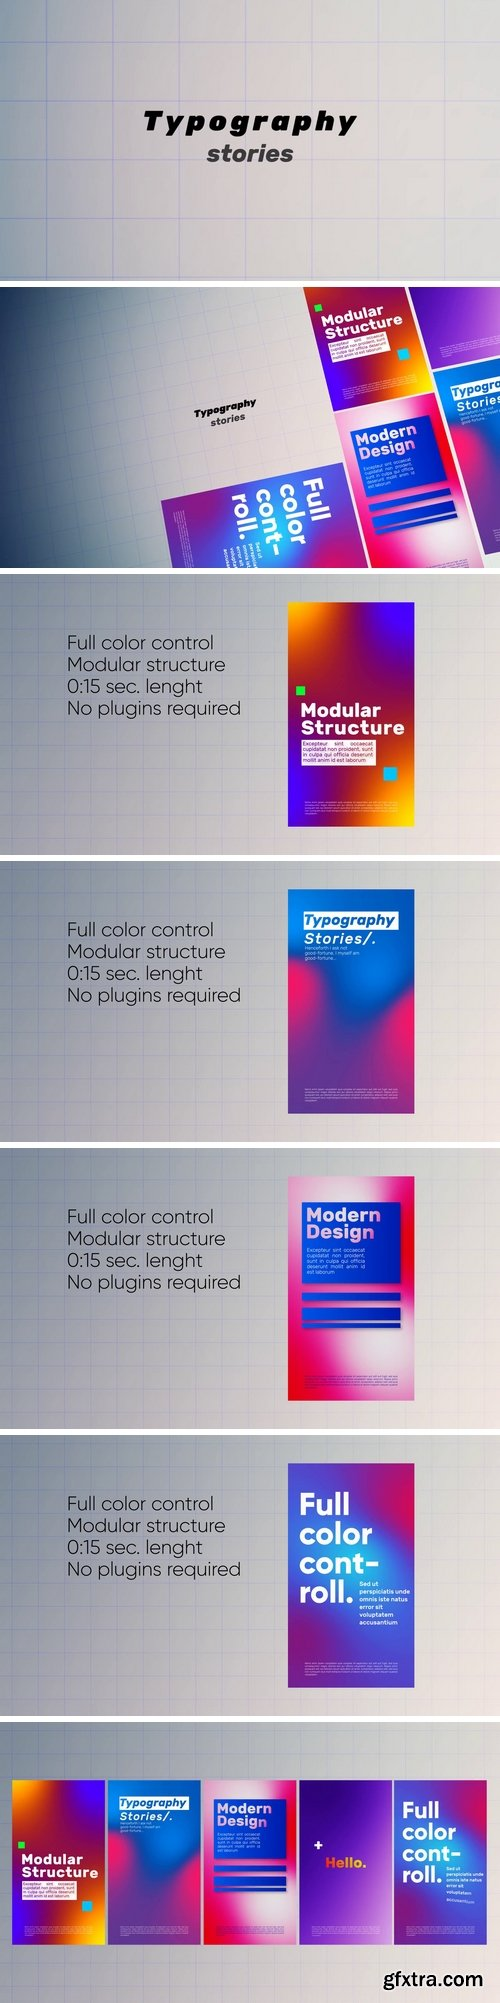 MA - Typography Stories After Effects Templates 151865